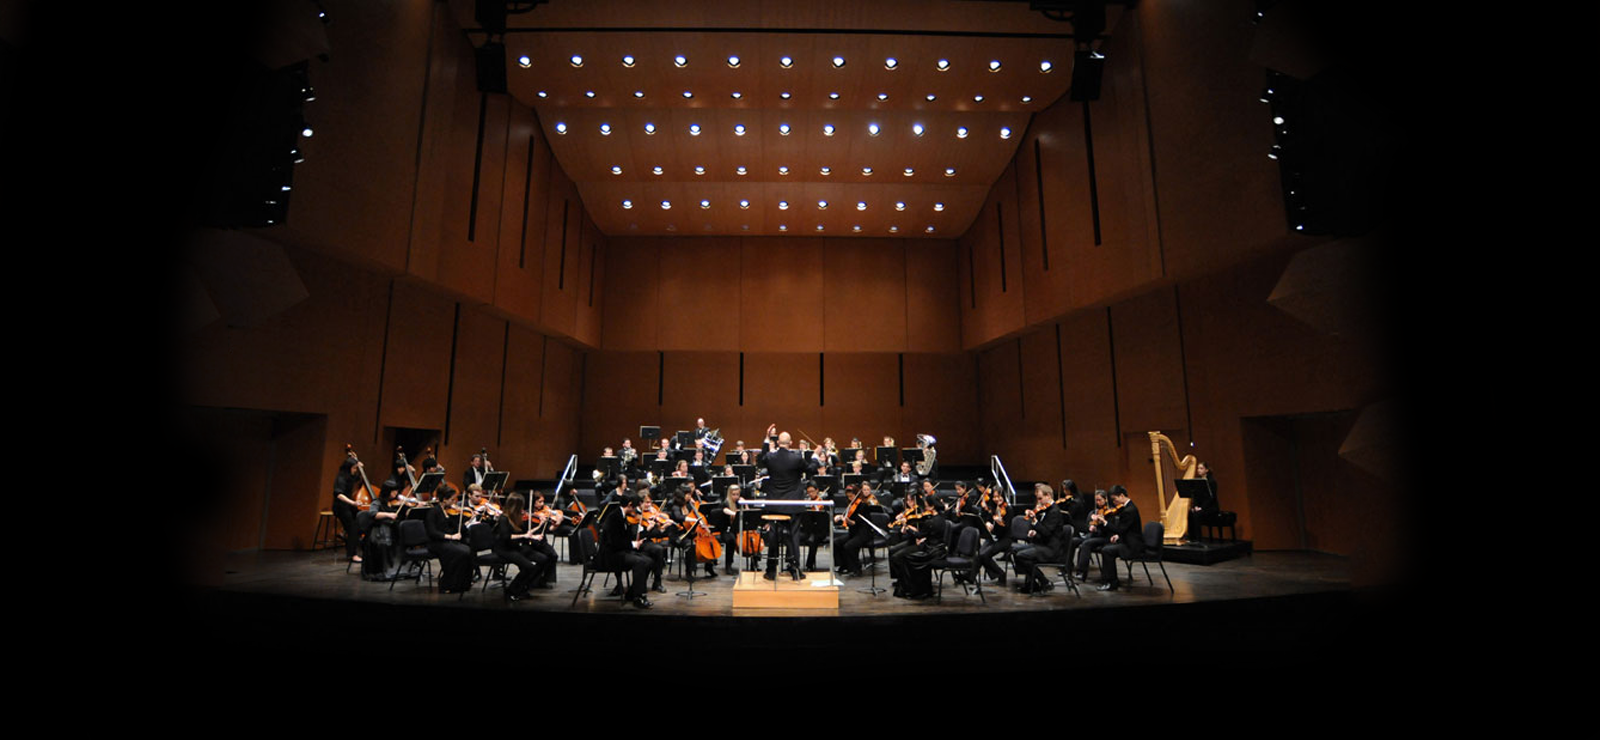 [Bard College Conservatory of Music]